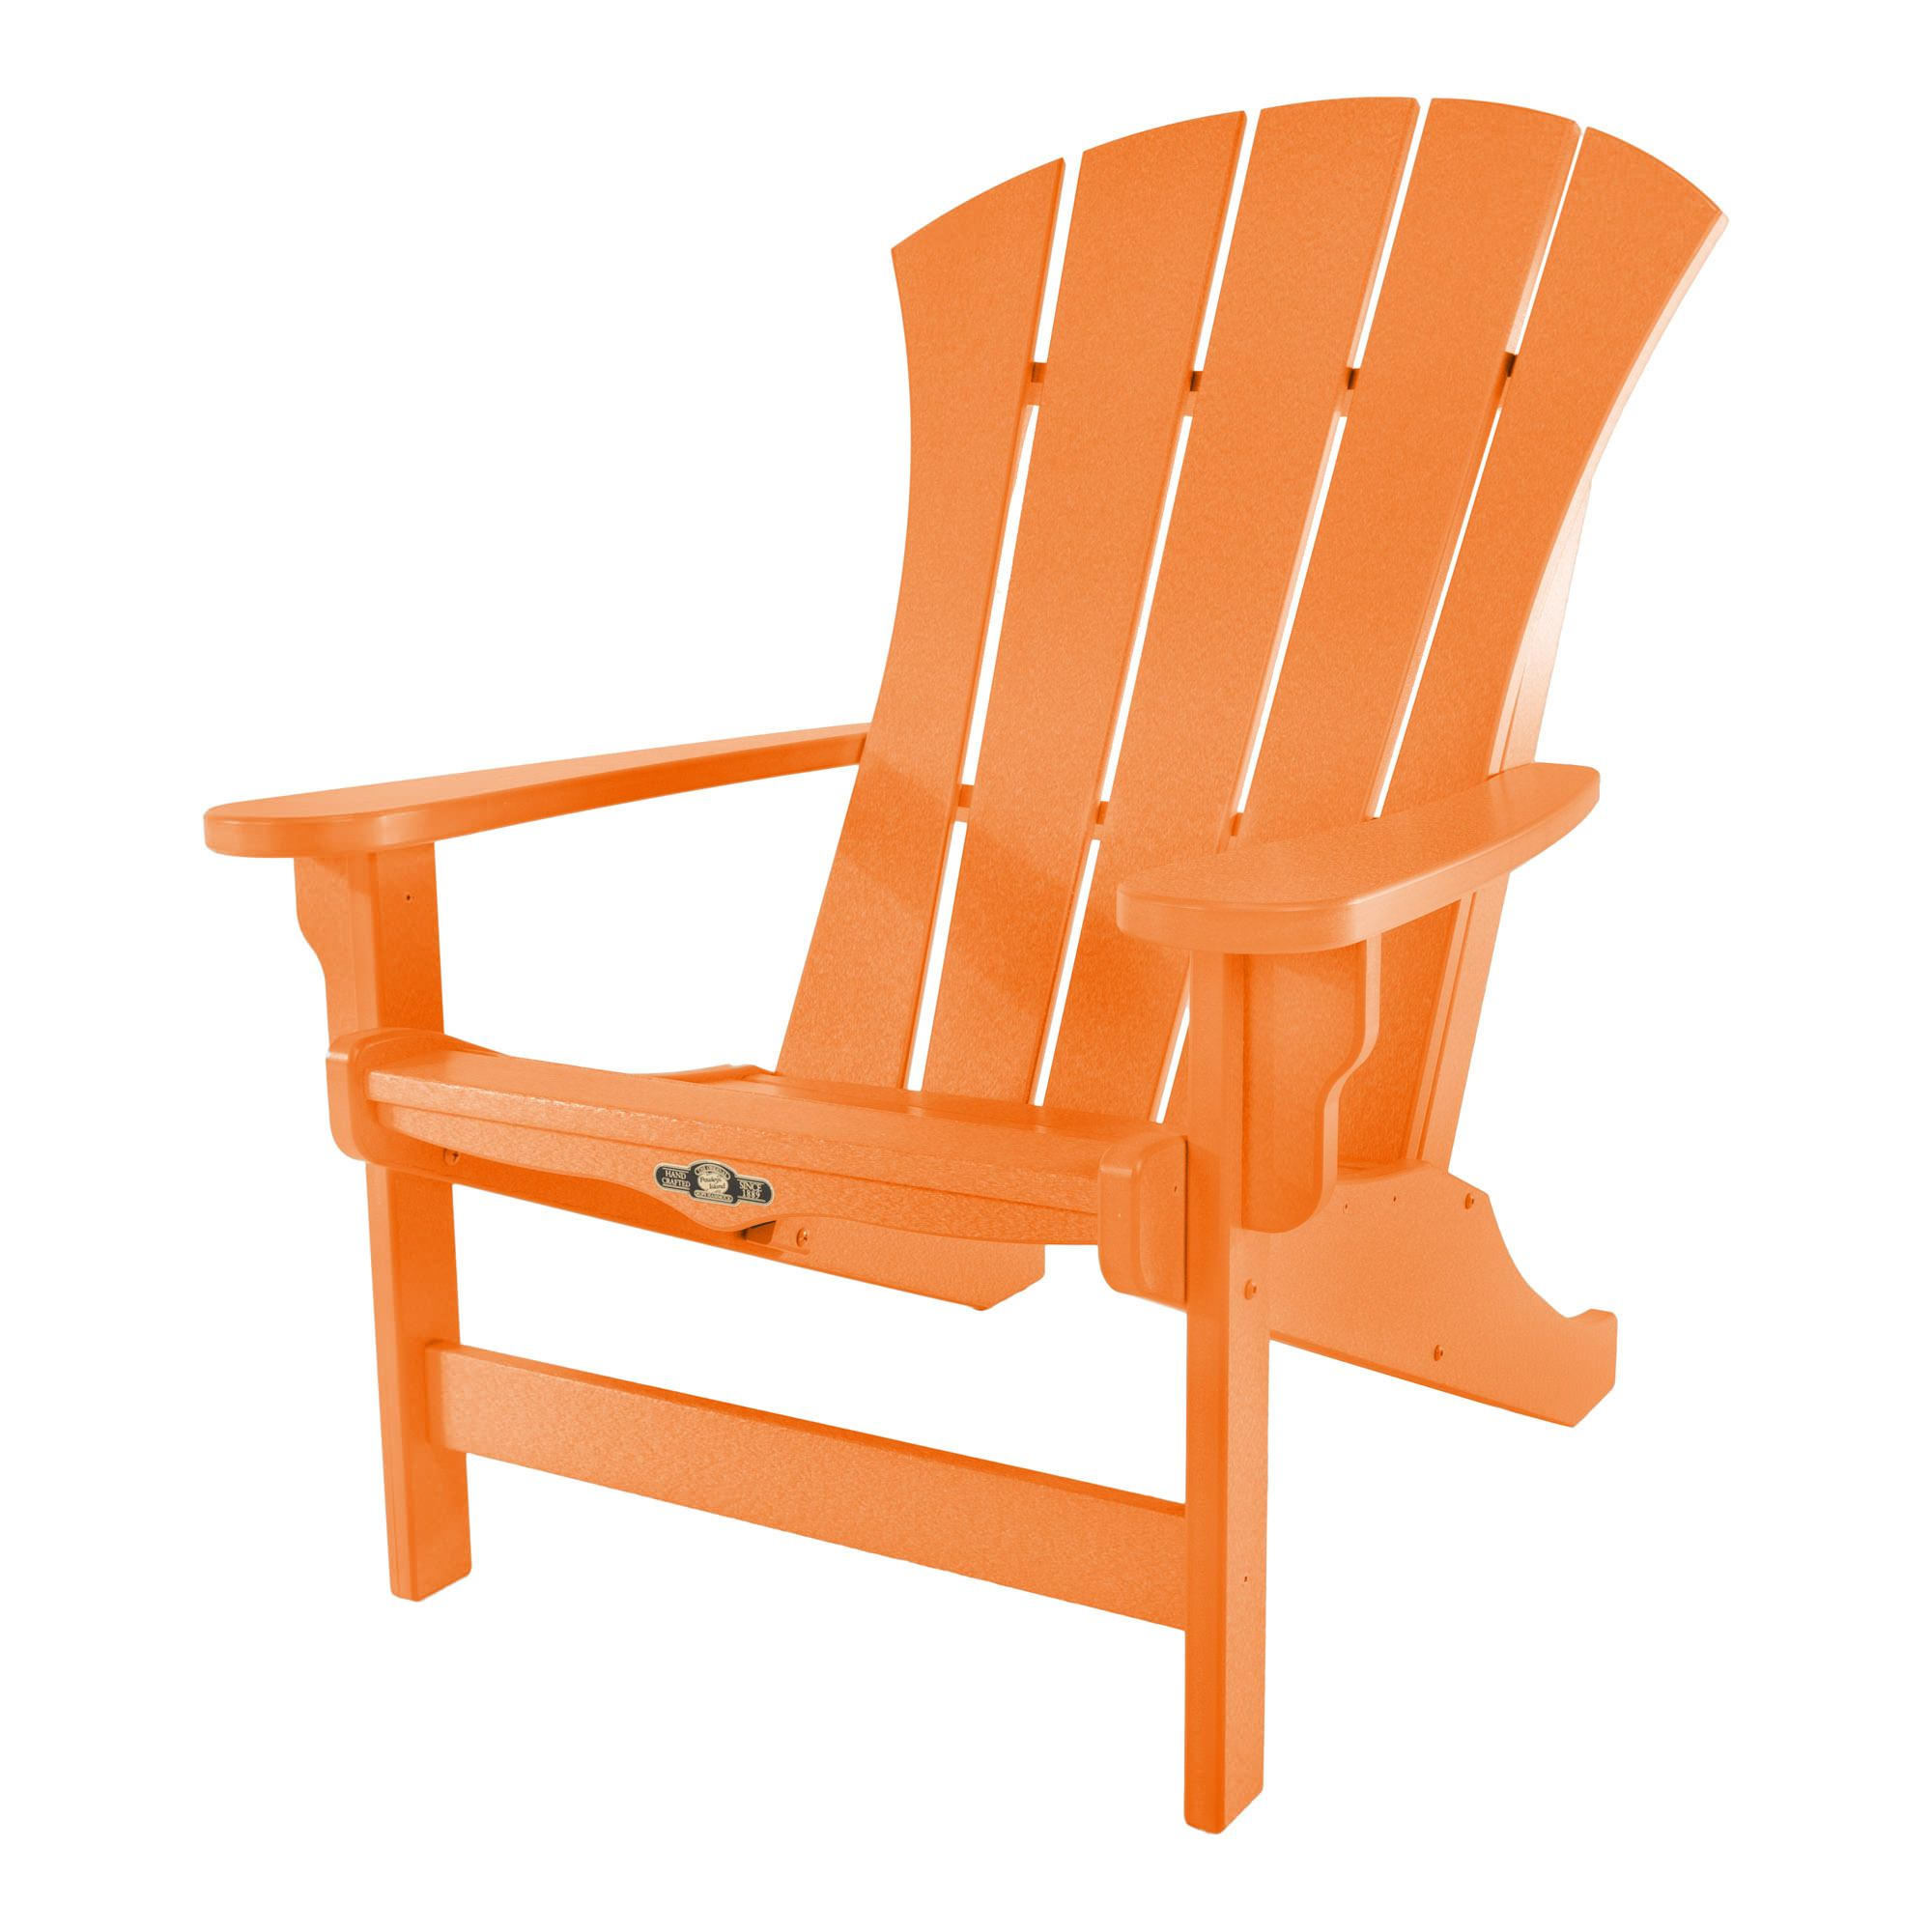 Sunrise Adirondack Chair